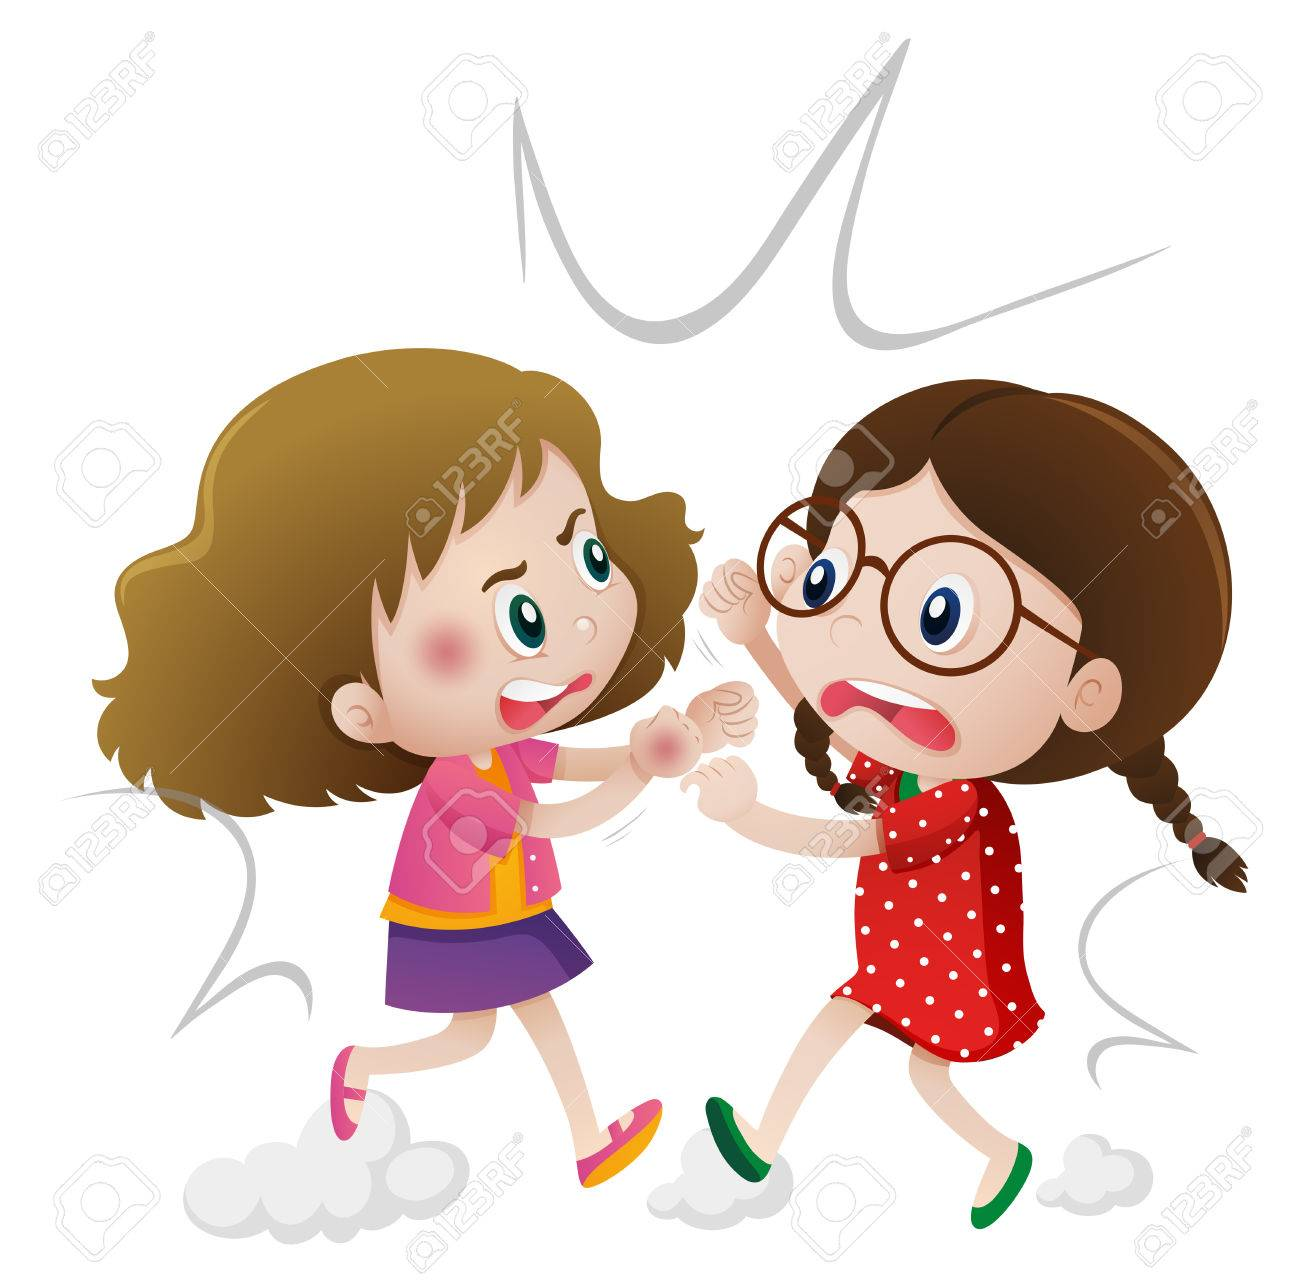 two angry girls fighting illustration royalty free cliparts, vectors